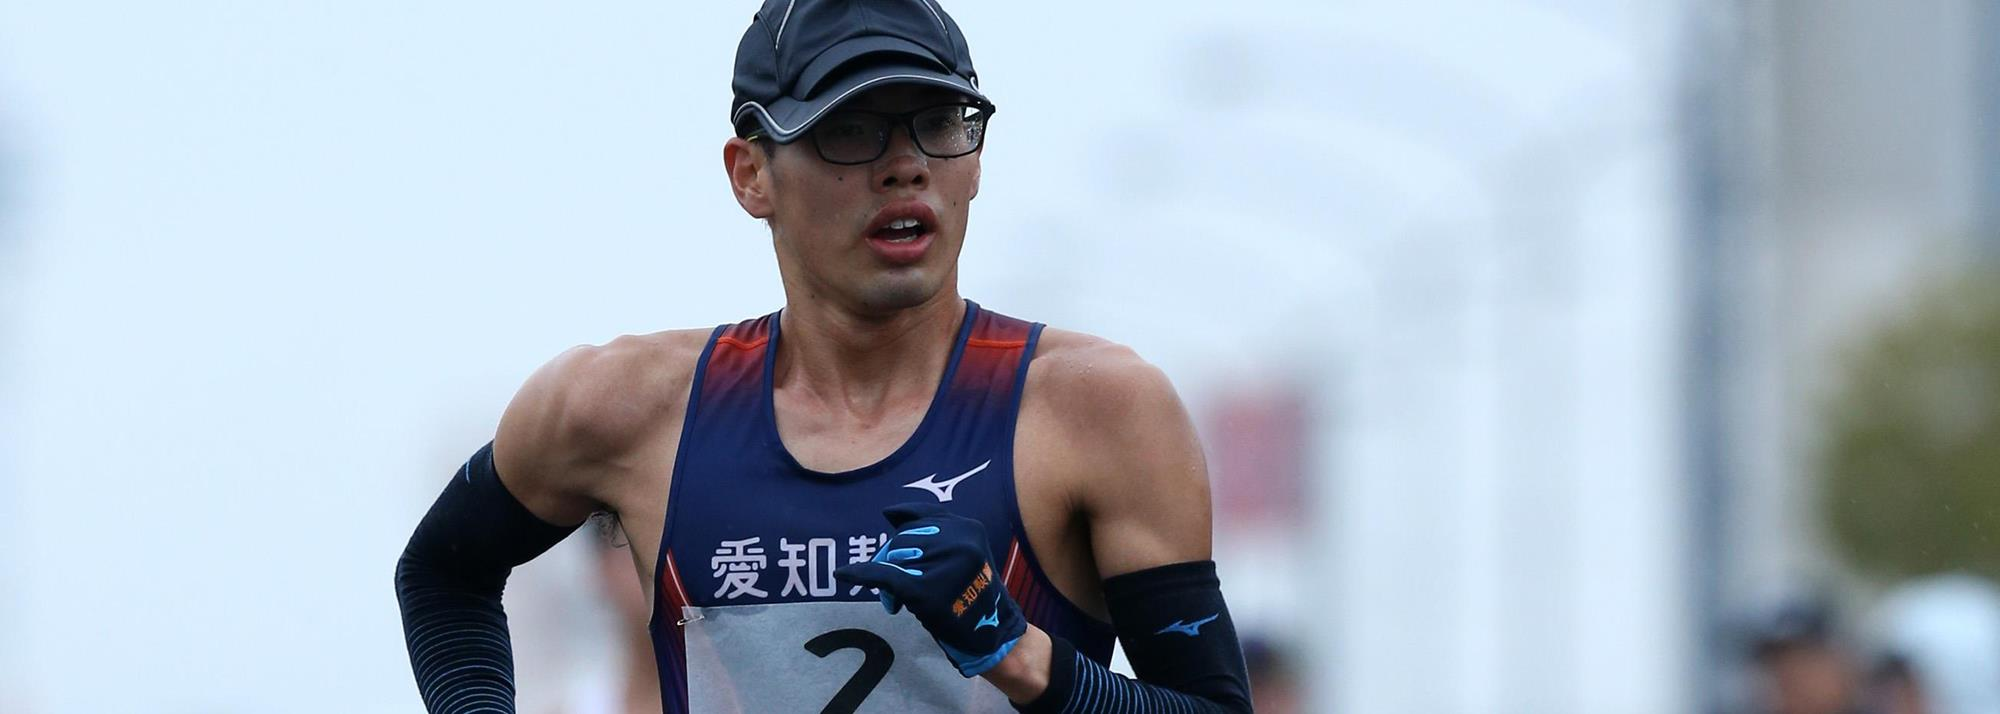 Yamanishi cruises to national 20km title in Kobe, secures Olympic team spot